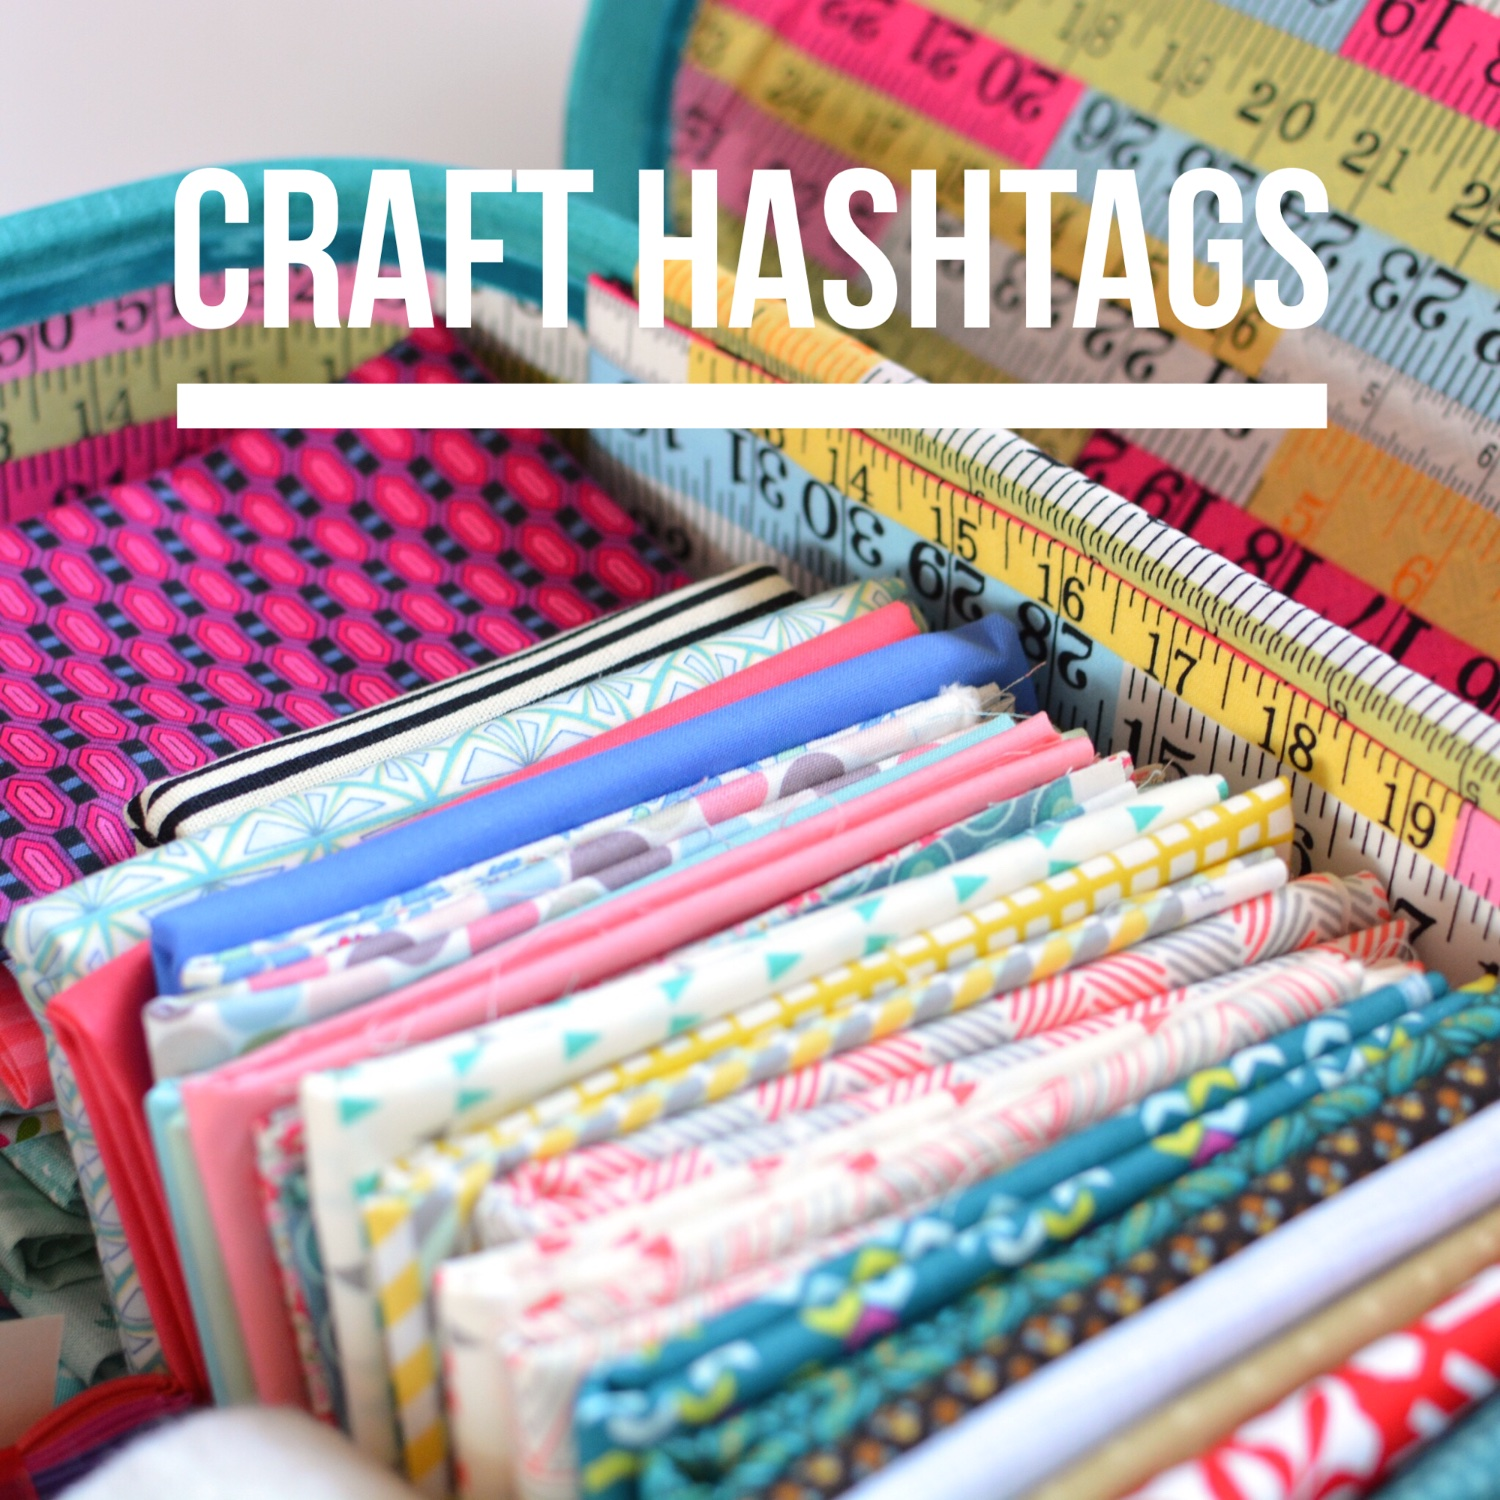 Craft hashtags | Hello! Hooray!